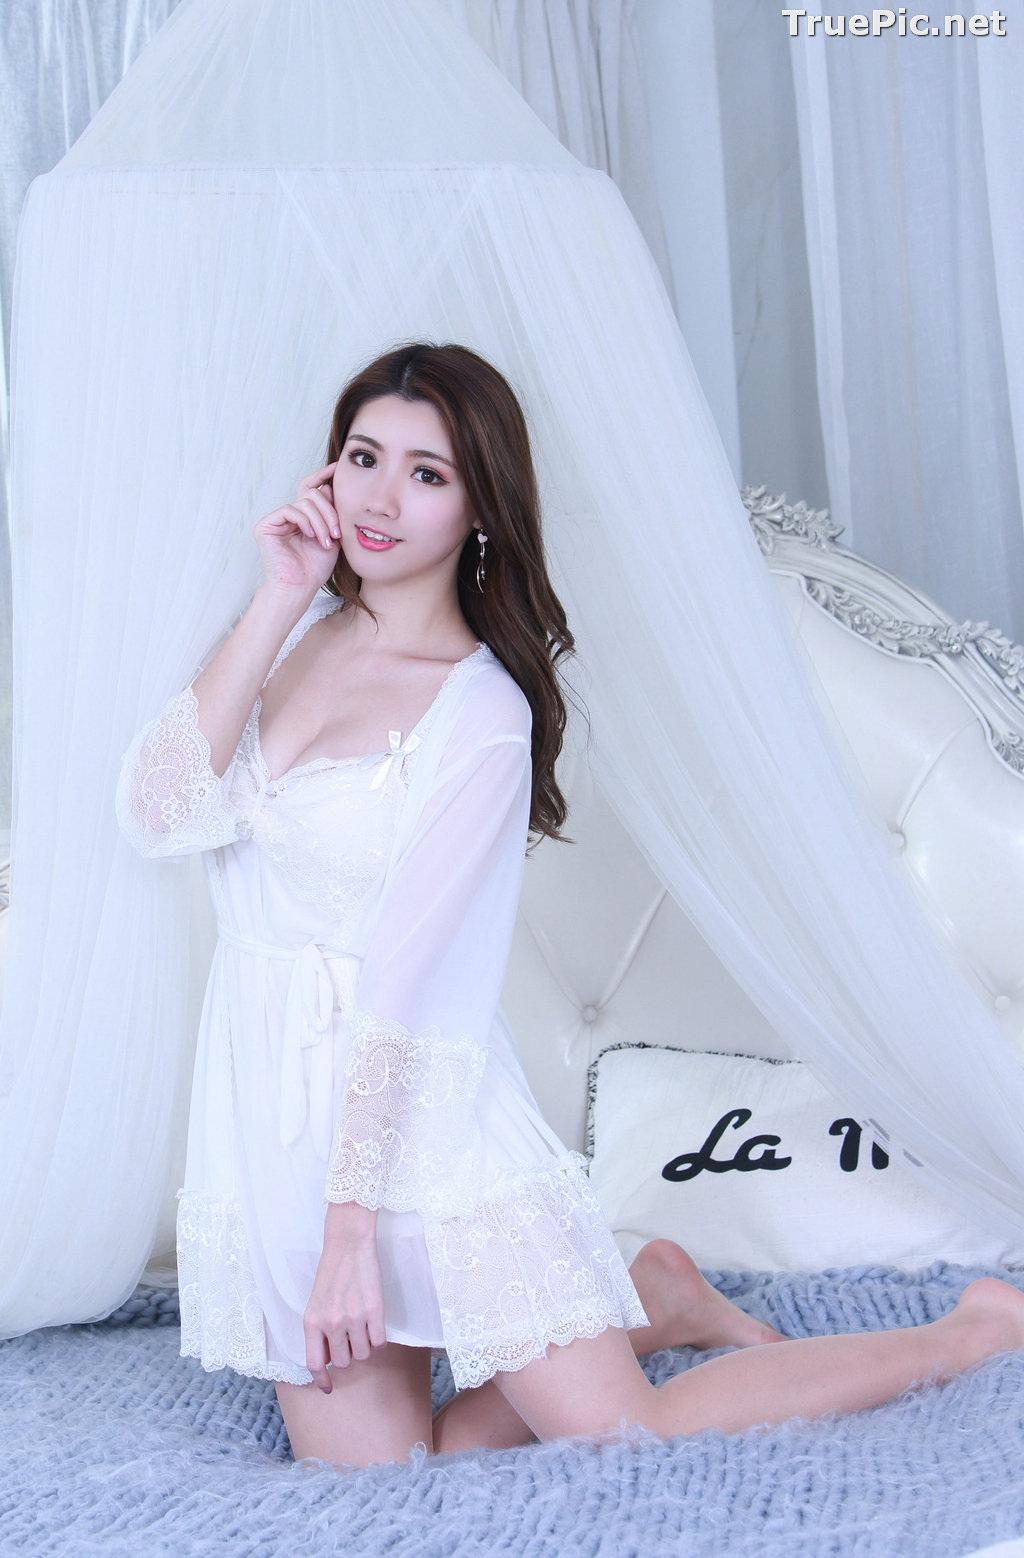 Image Taiwanese Model - 張倫甄 - Lovely and Beautiful White Sleepwear - TruePic.net - Picture-5